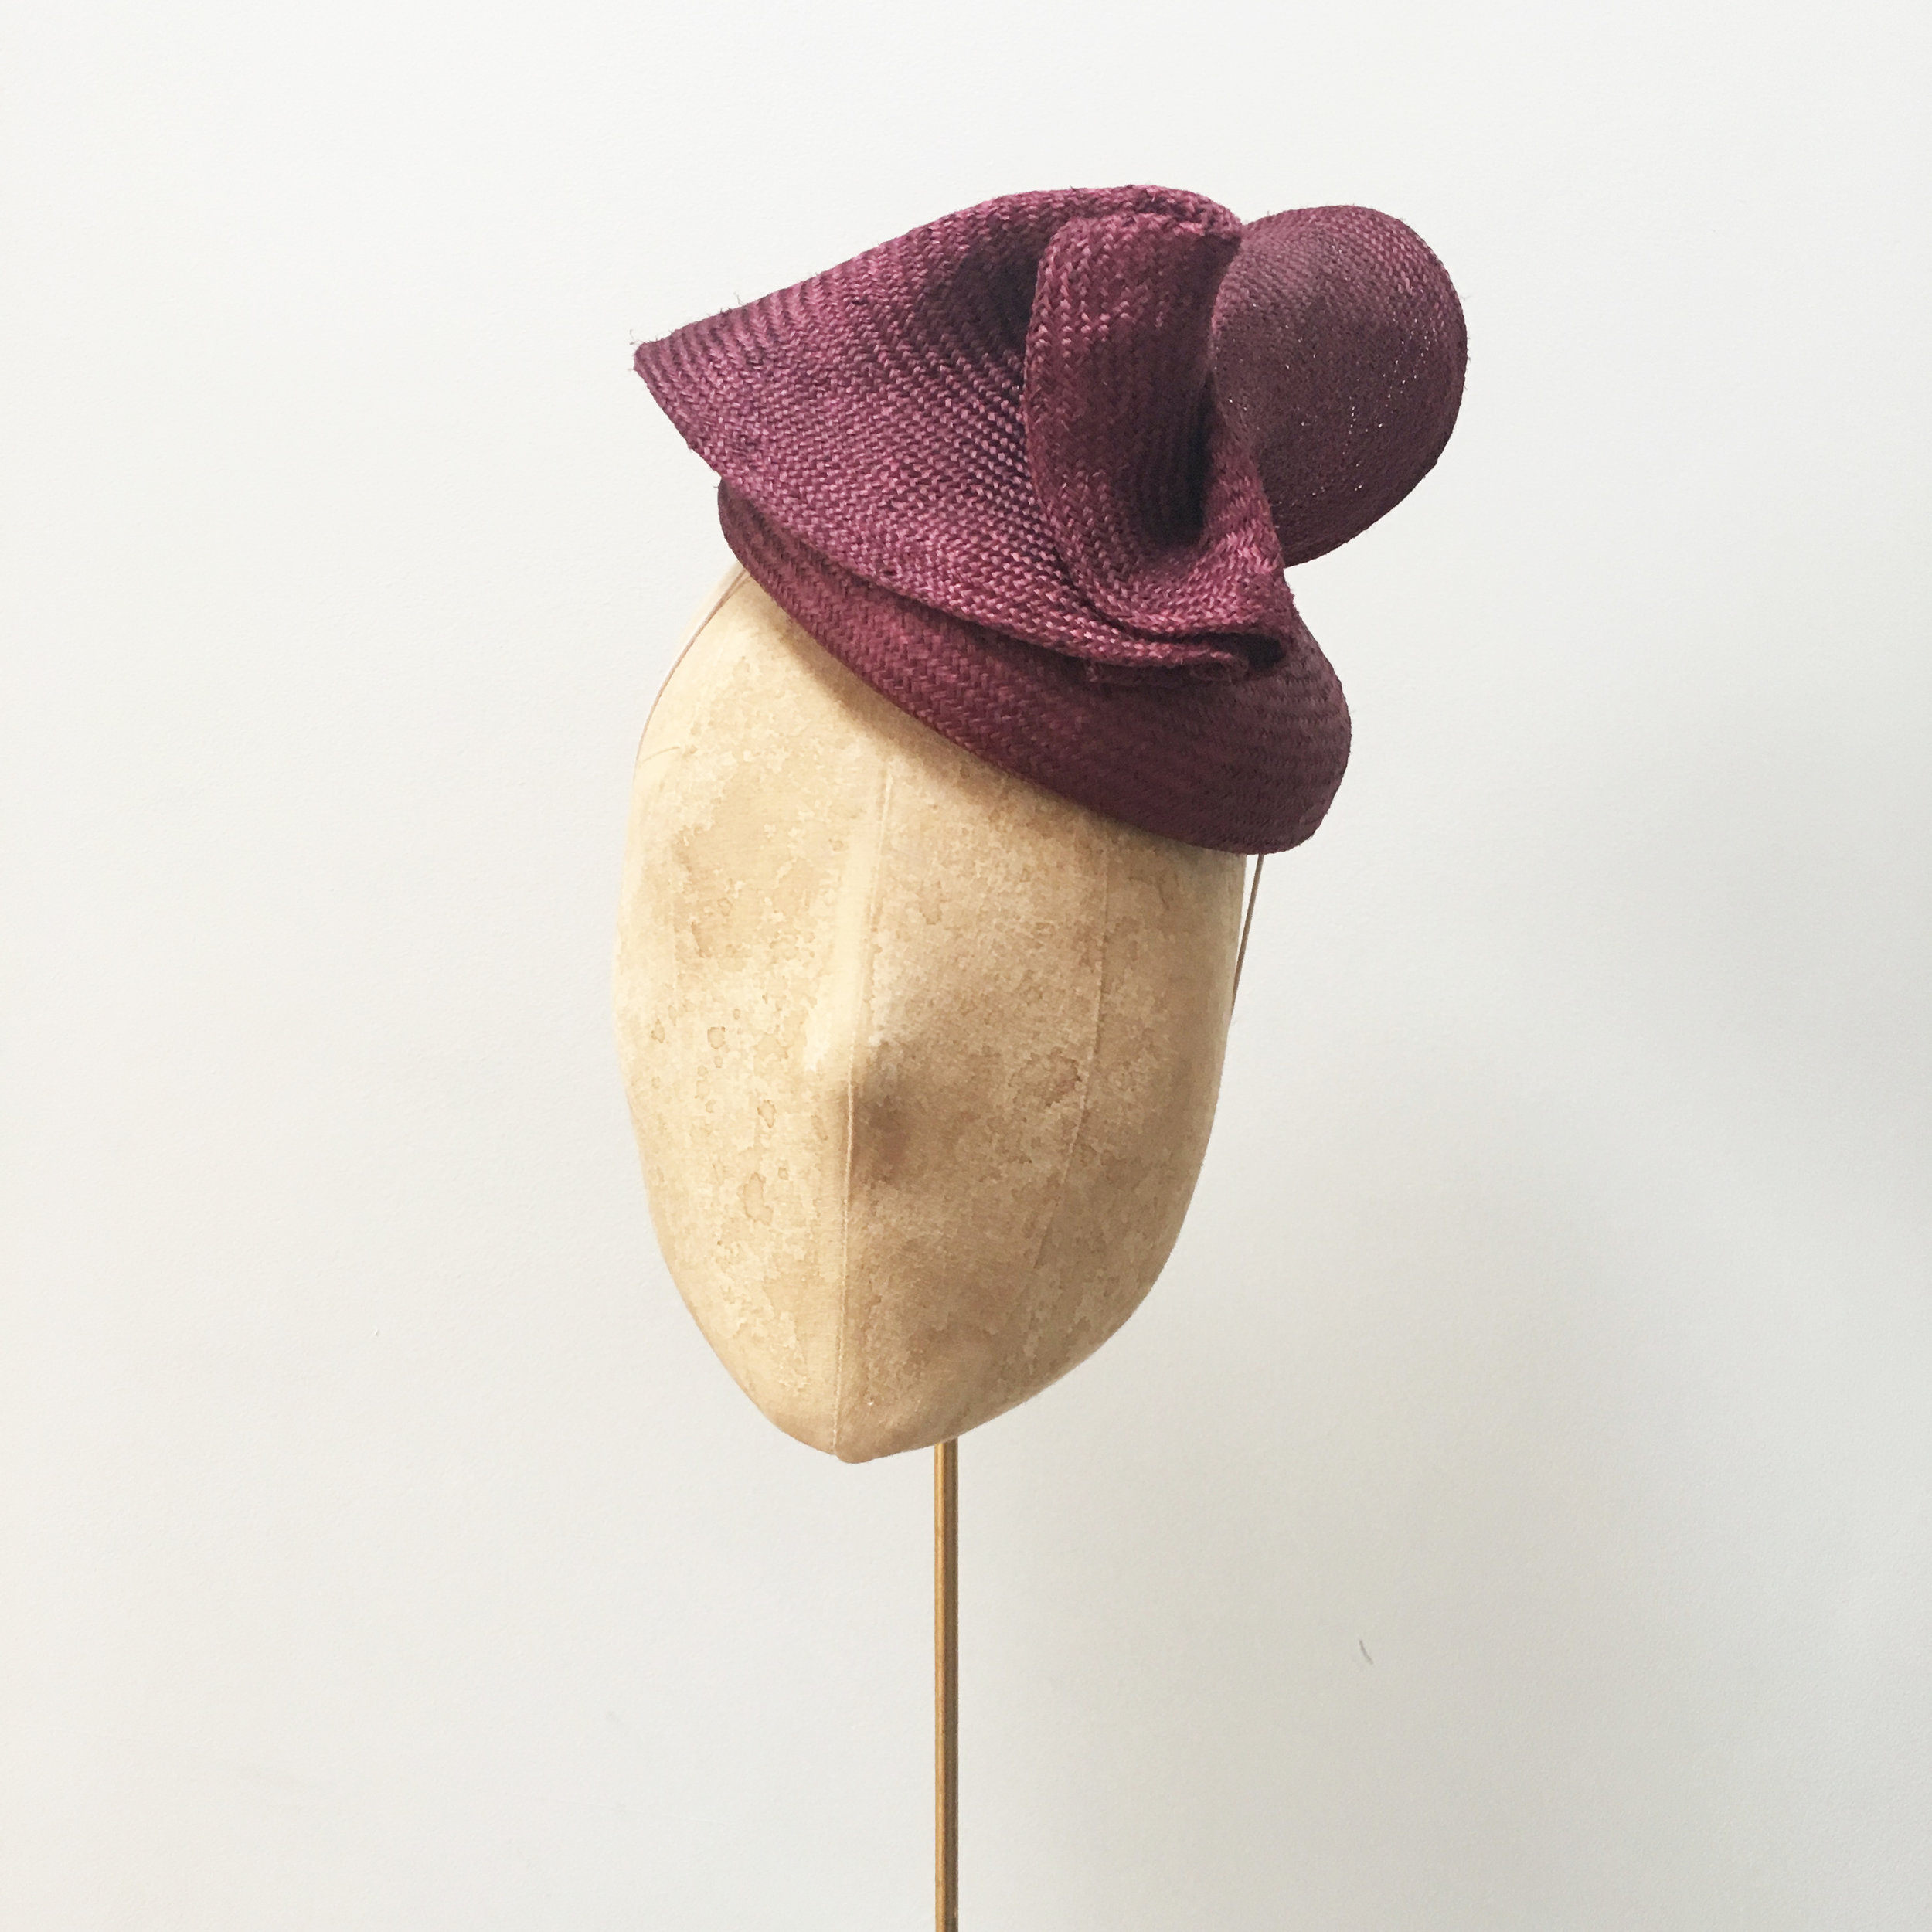 SCROLL - £60  Maroon sisal straw button headpiece with matching soft structural folds.